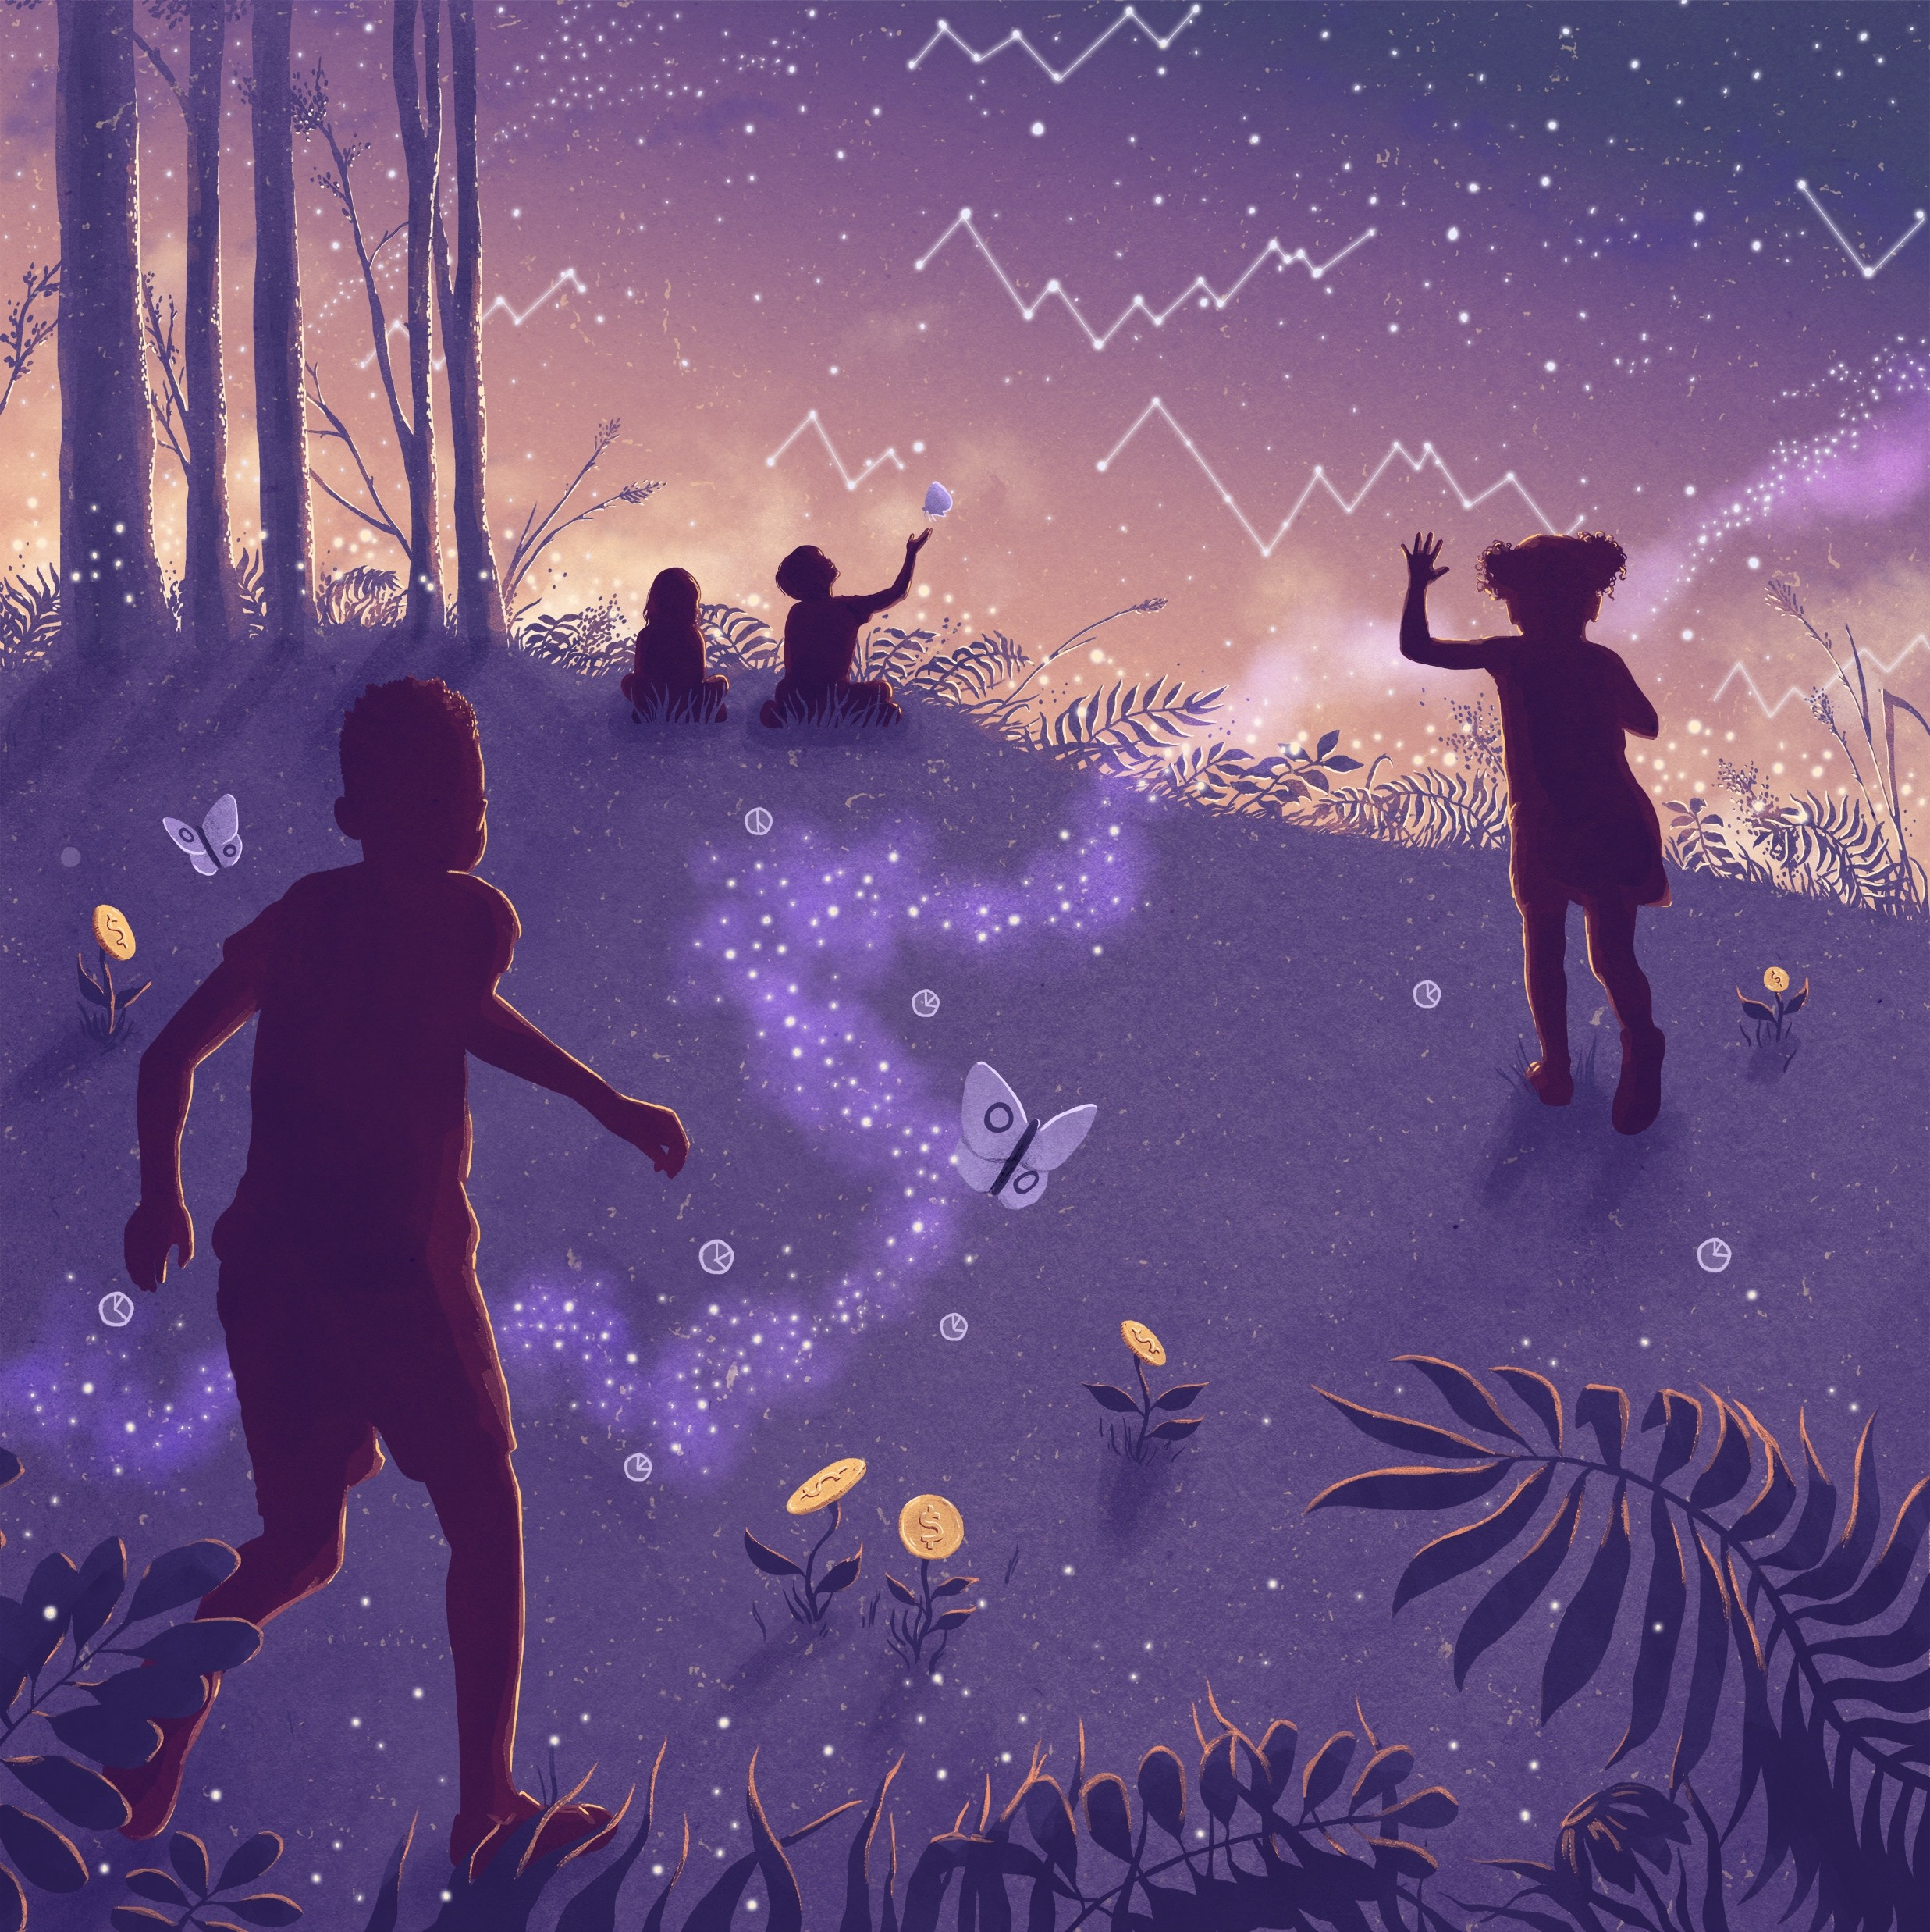 illustration of children playing in a money forest